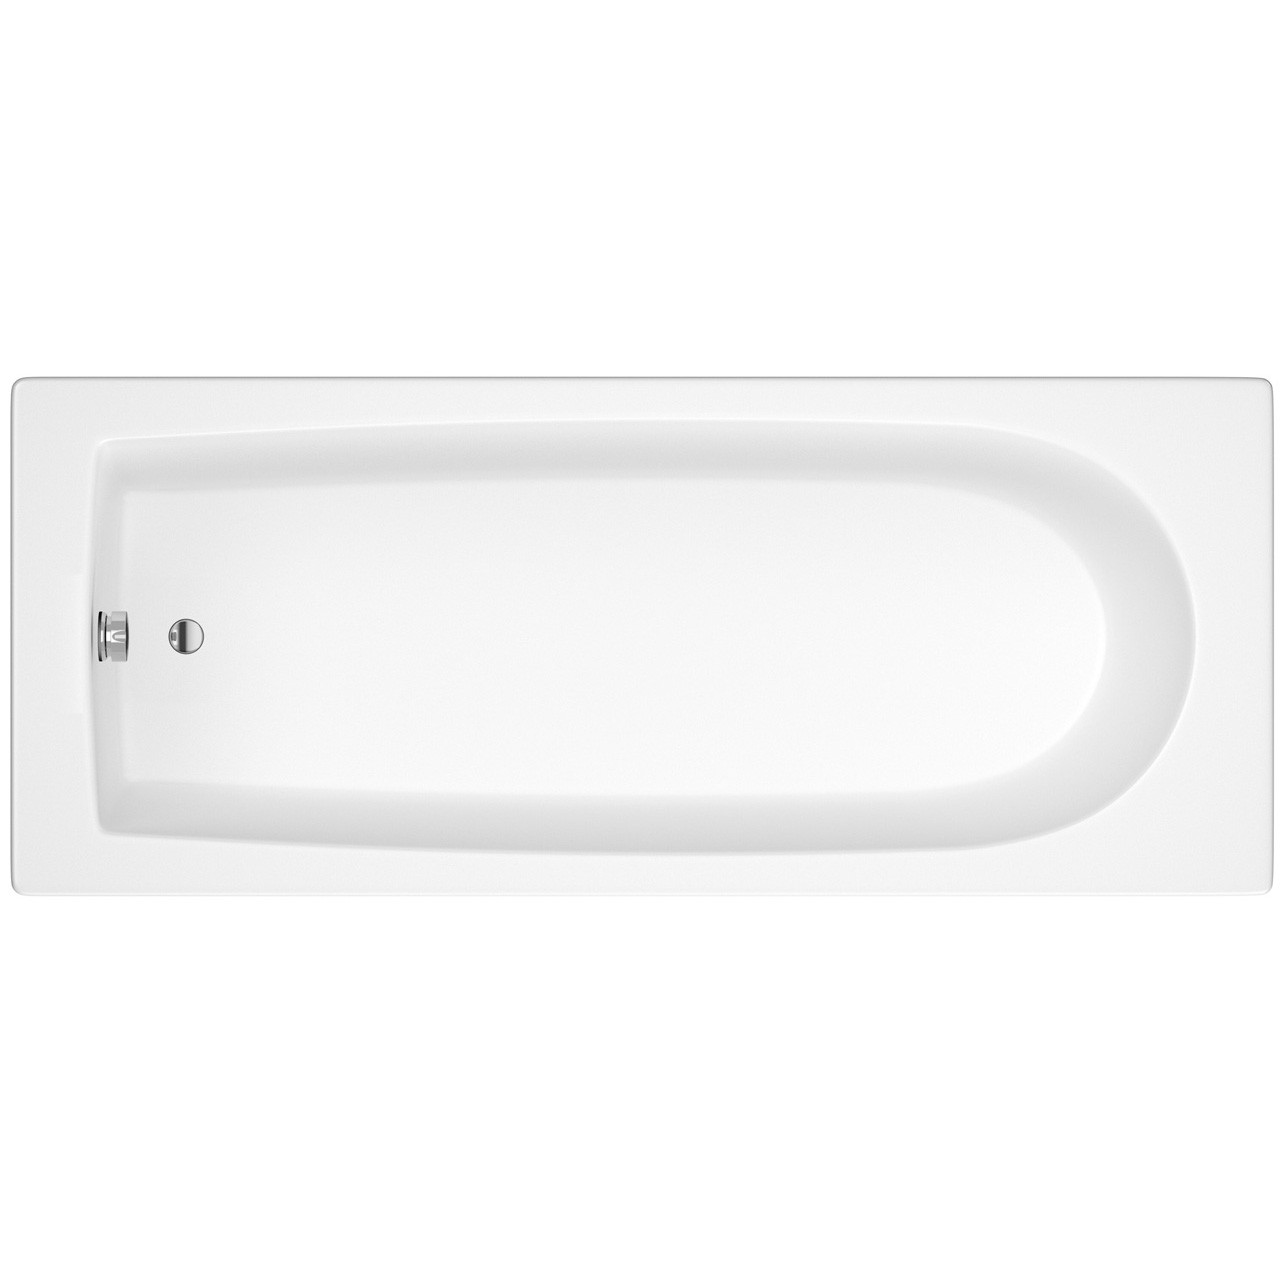 Premier Standard Single Ended Bath 1700mm x 750mm - NBA610